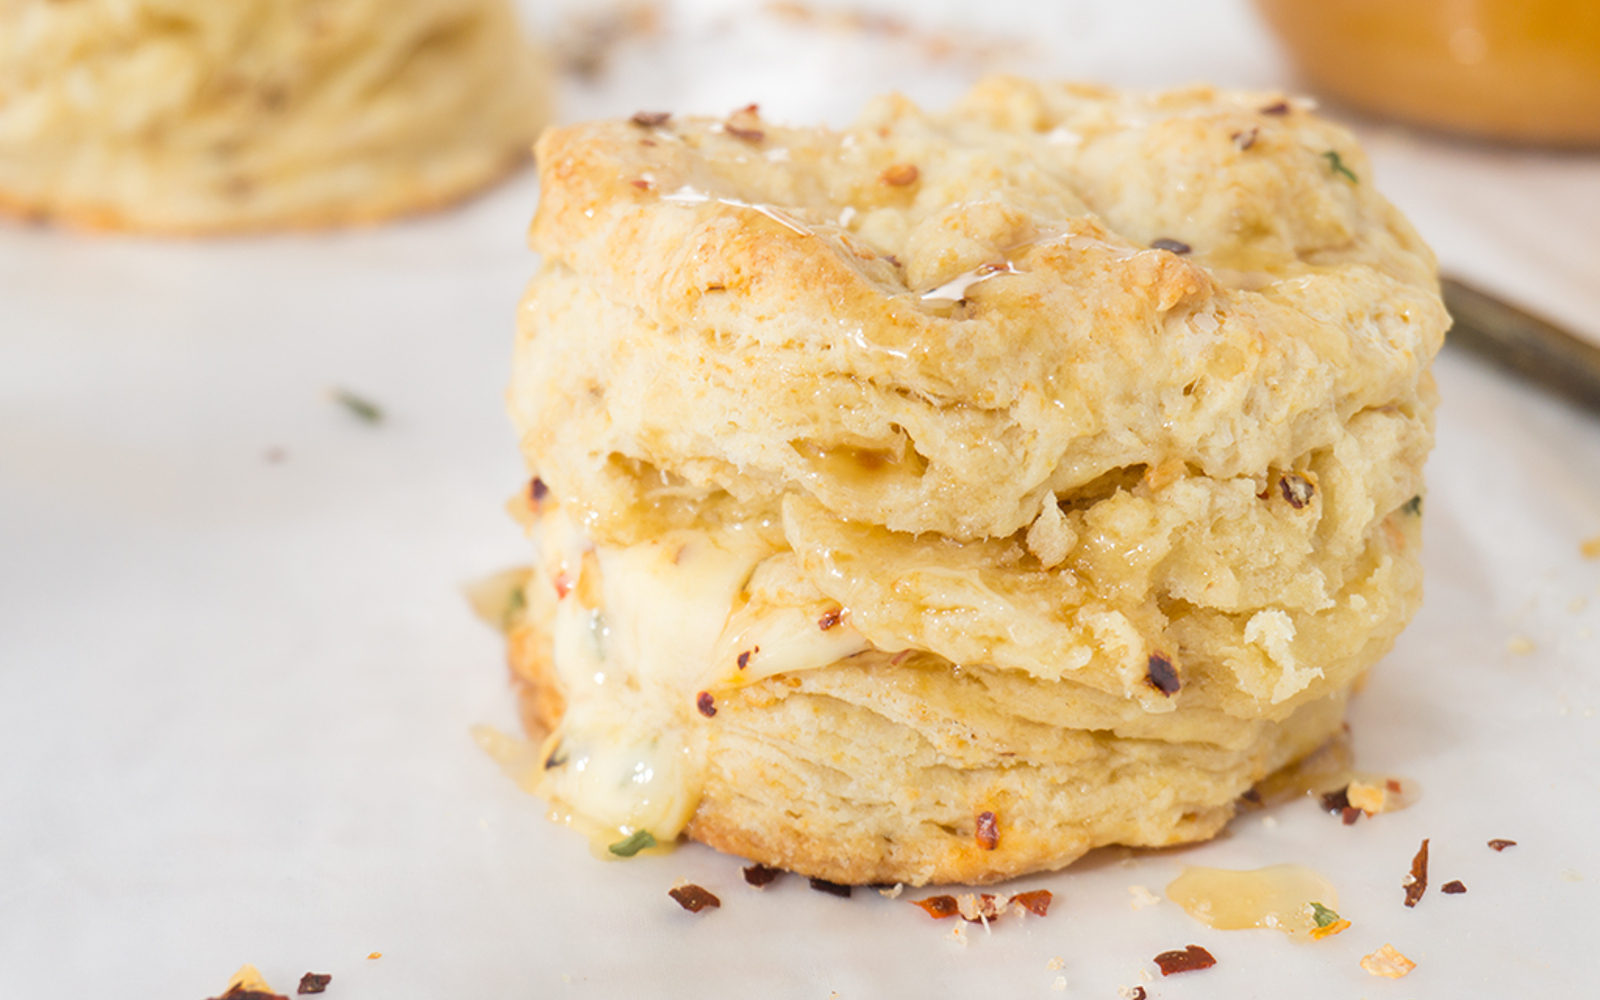 Vegan Spicy Sriracha Buttermilk Biscuits